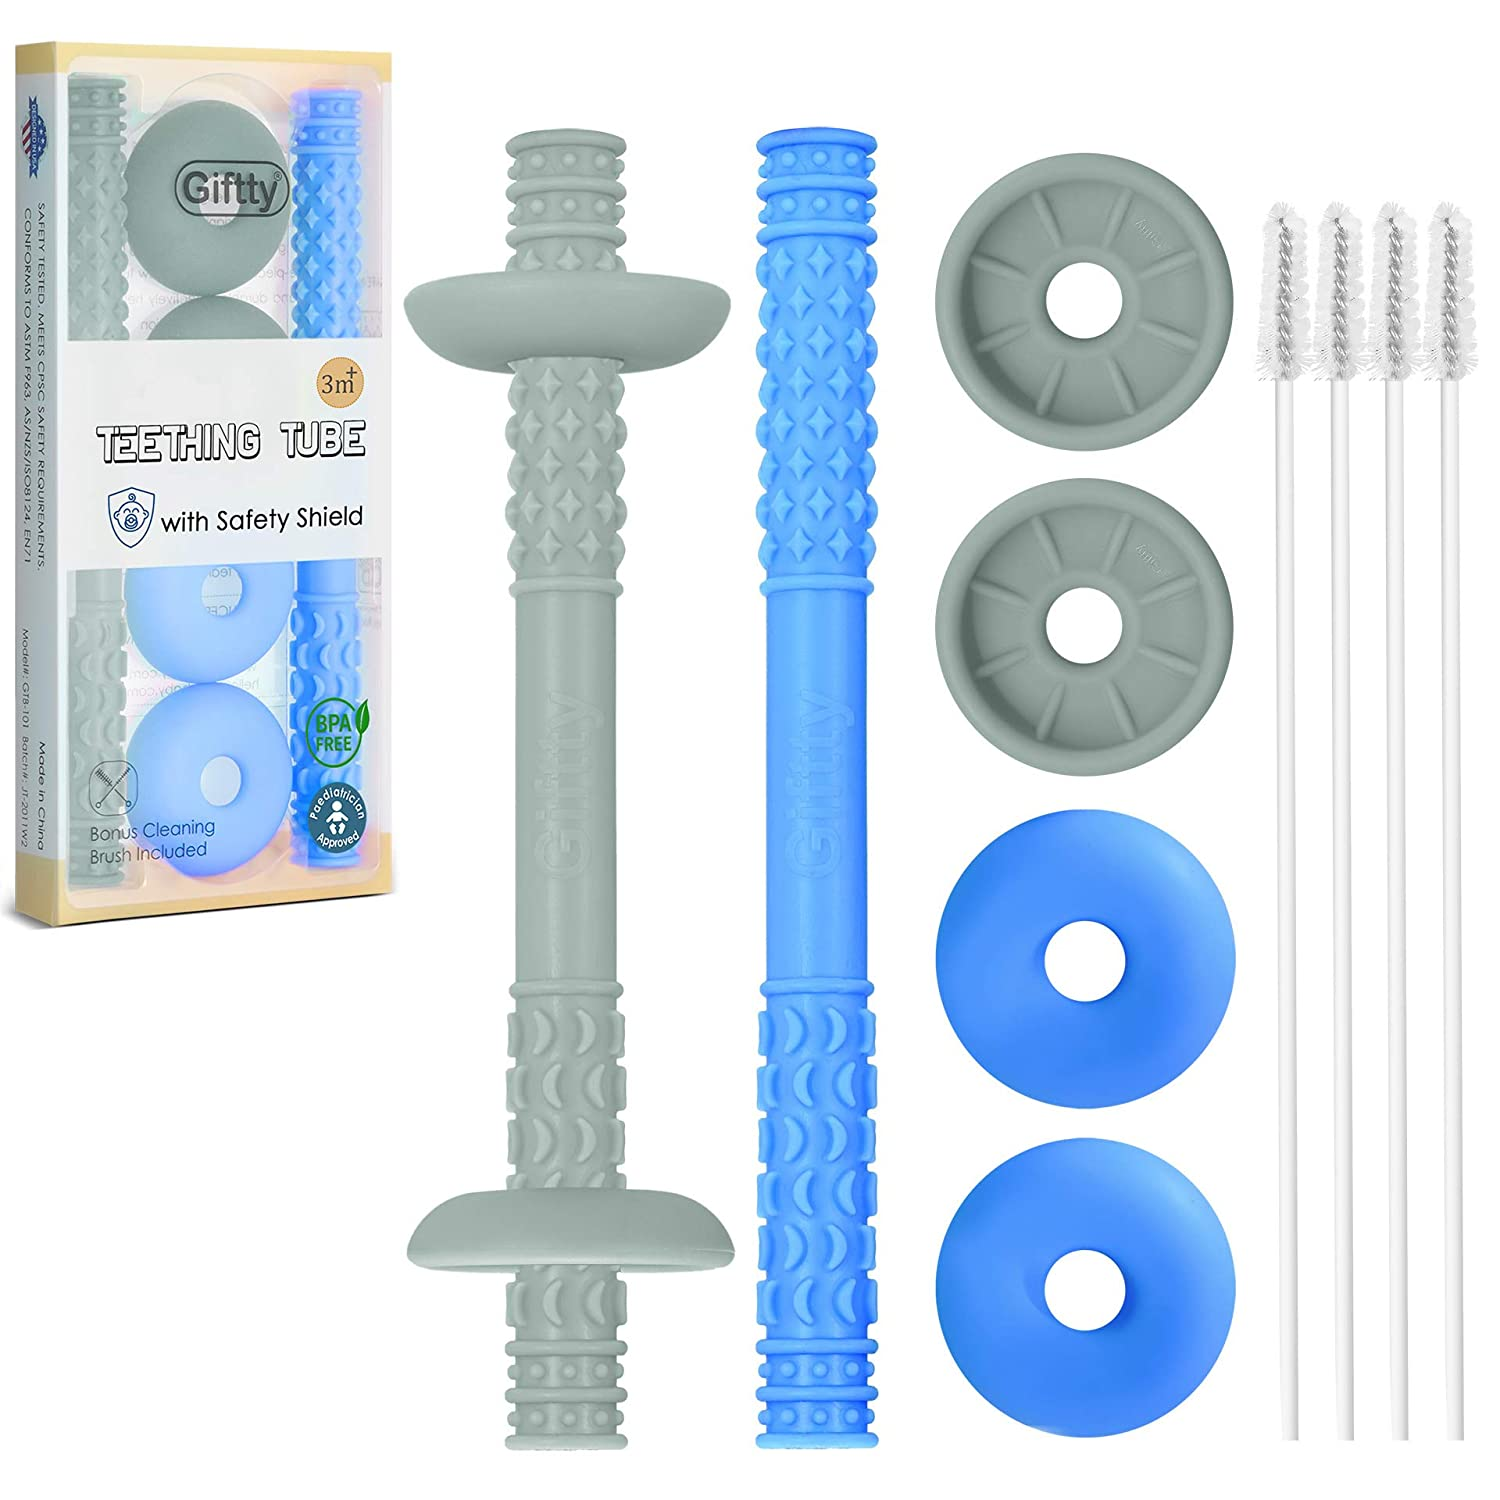 Teething Tube with Safety Shield Max famous 66% OFF Sensory Toy Teether Hollow Baby